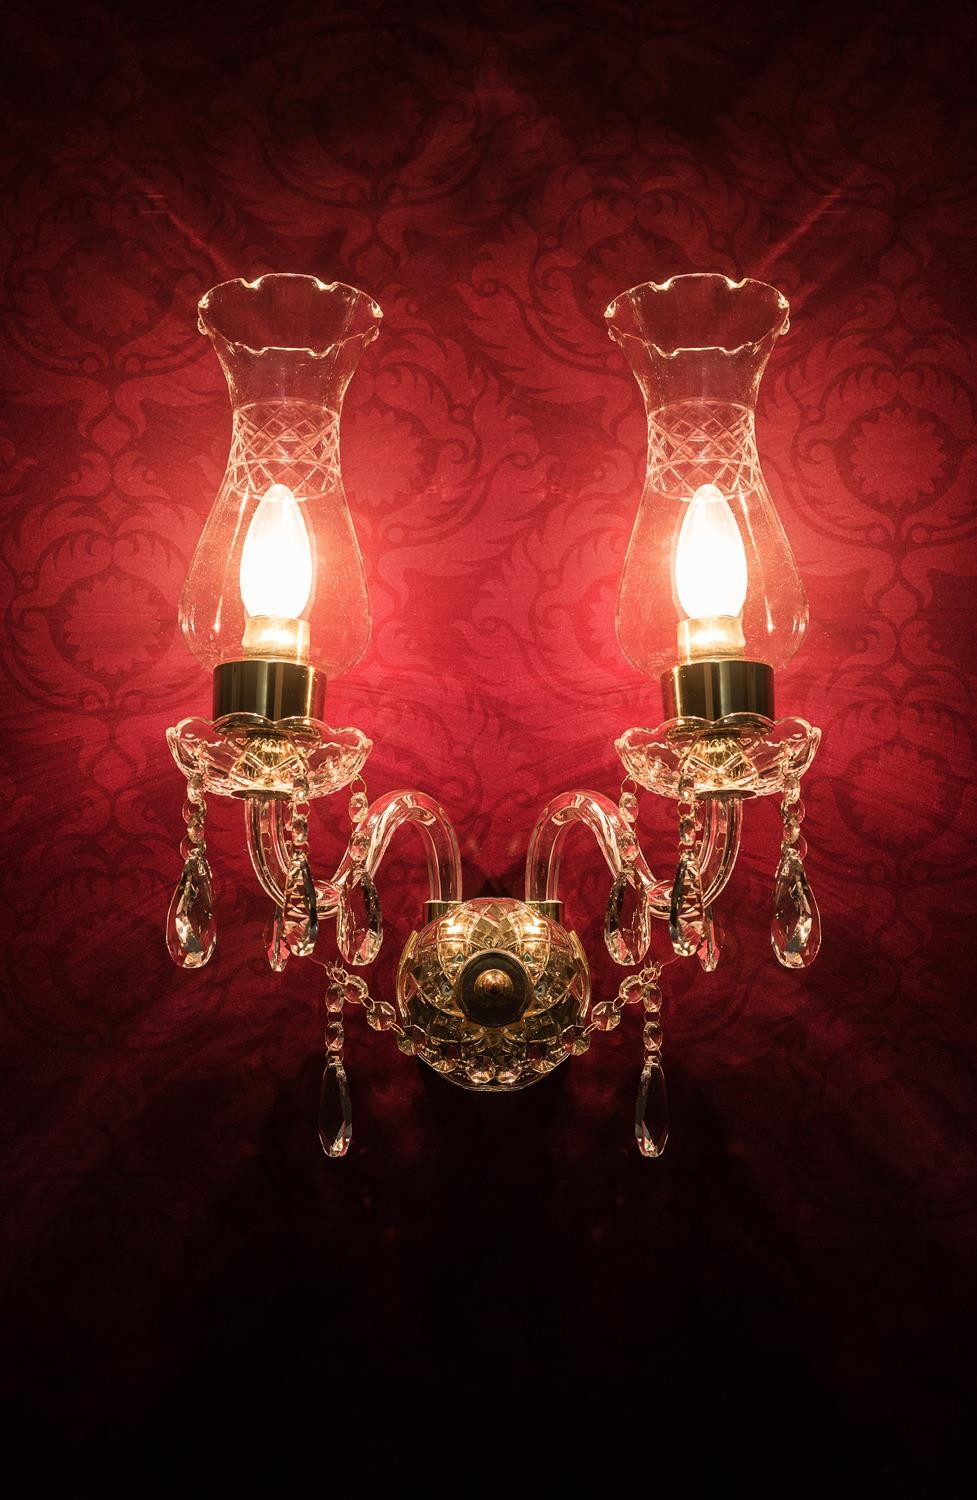 Crystal Arm & Chimney Double Wall Sconce